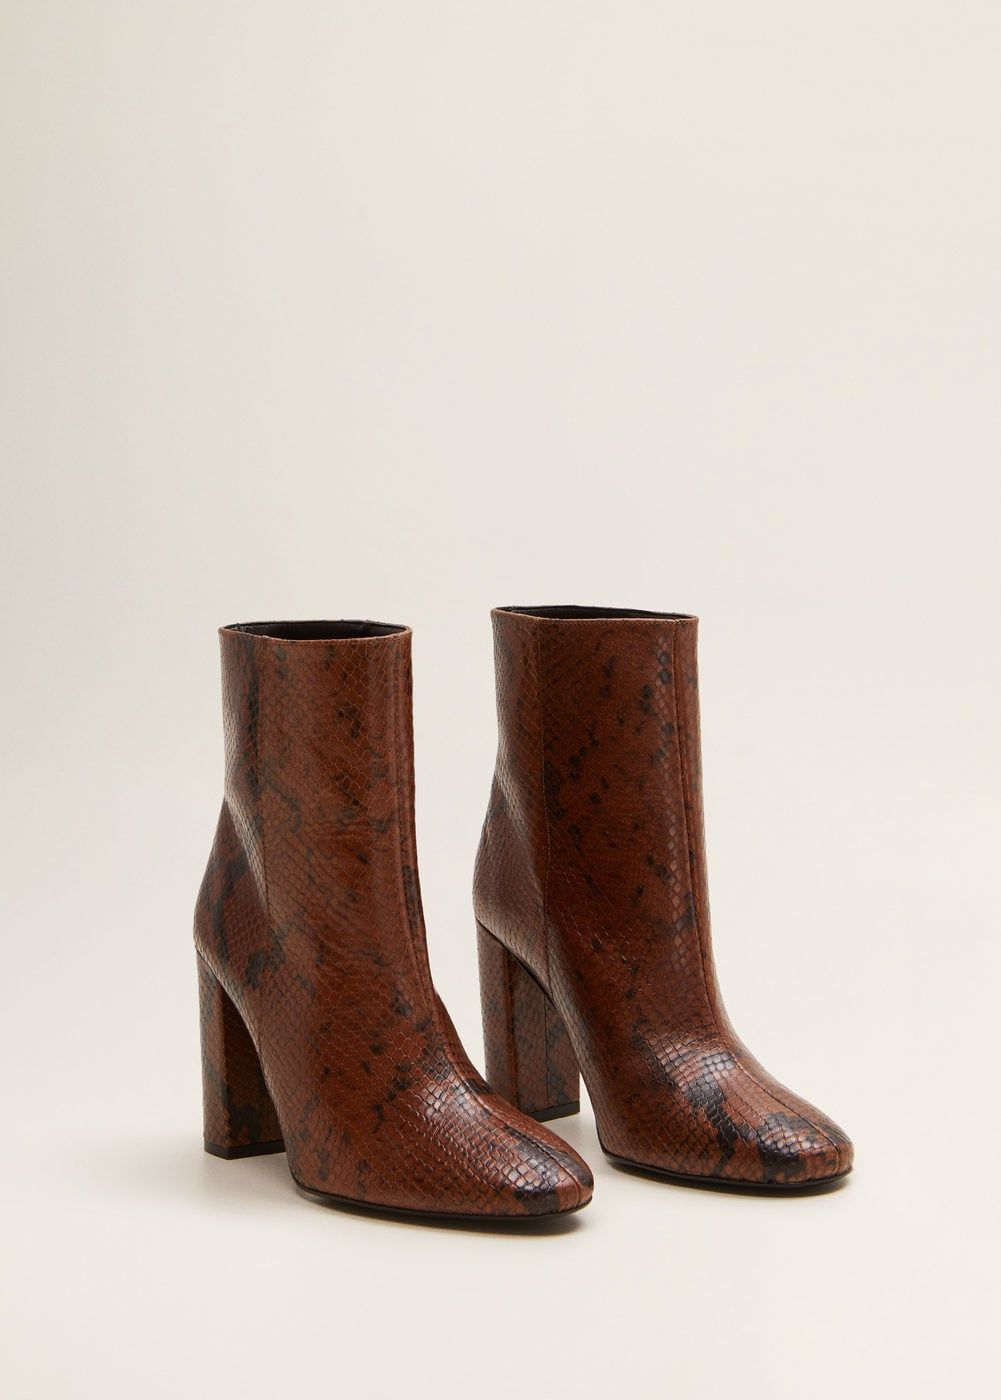 240f017aeb58 Snake leather ankle boots - Women in 2019